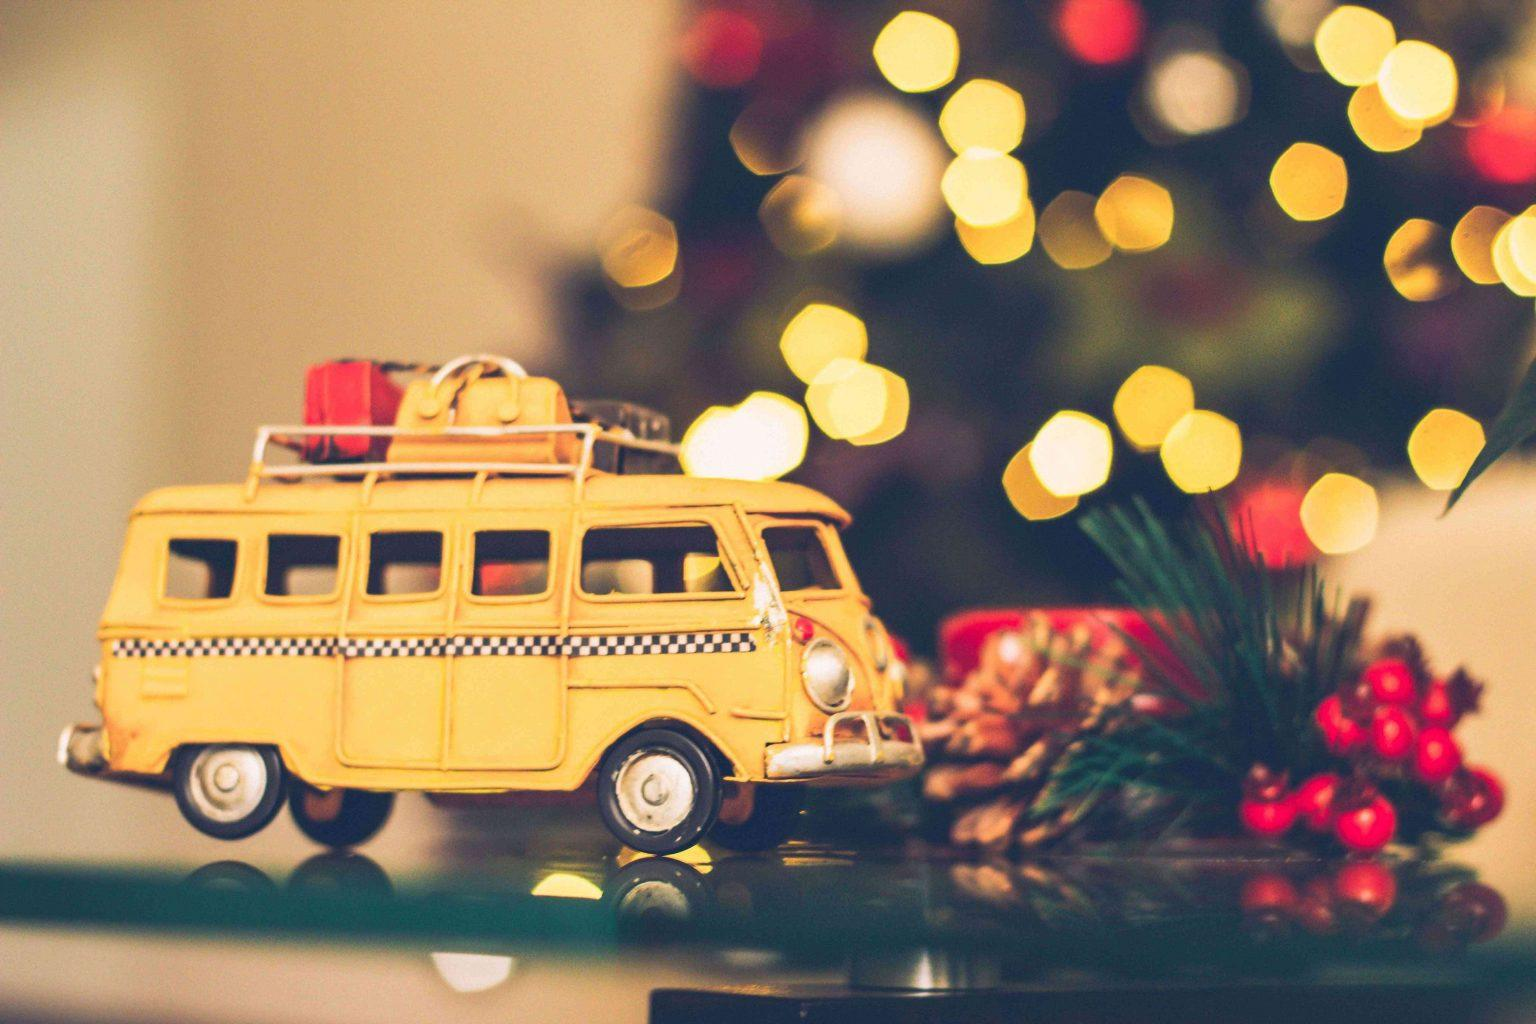 shopping-bags-on-bus-ornament